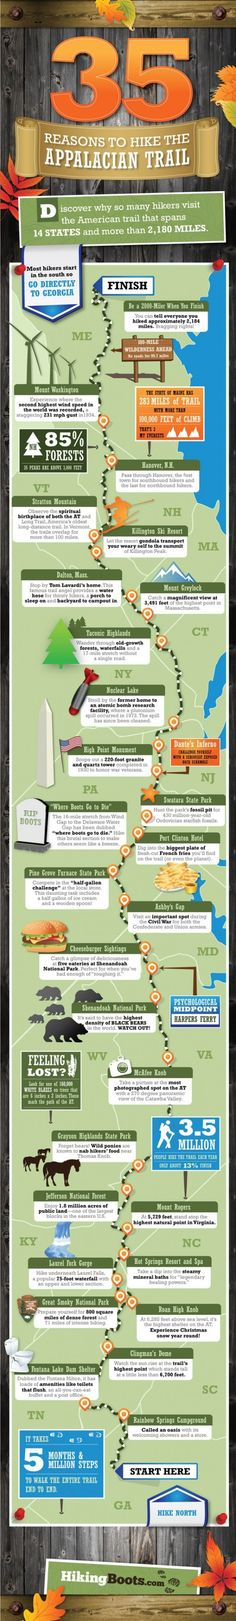 Your guide to Hike the Appalachian Trail | Extremely-Sharp | infographic on the trails from GA to Maine | hiking | camping and the outdoors |